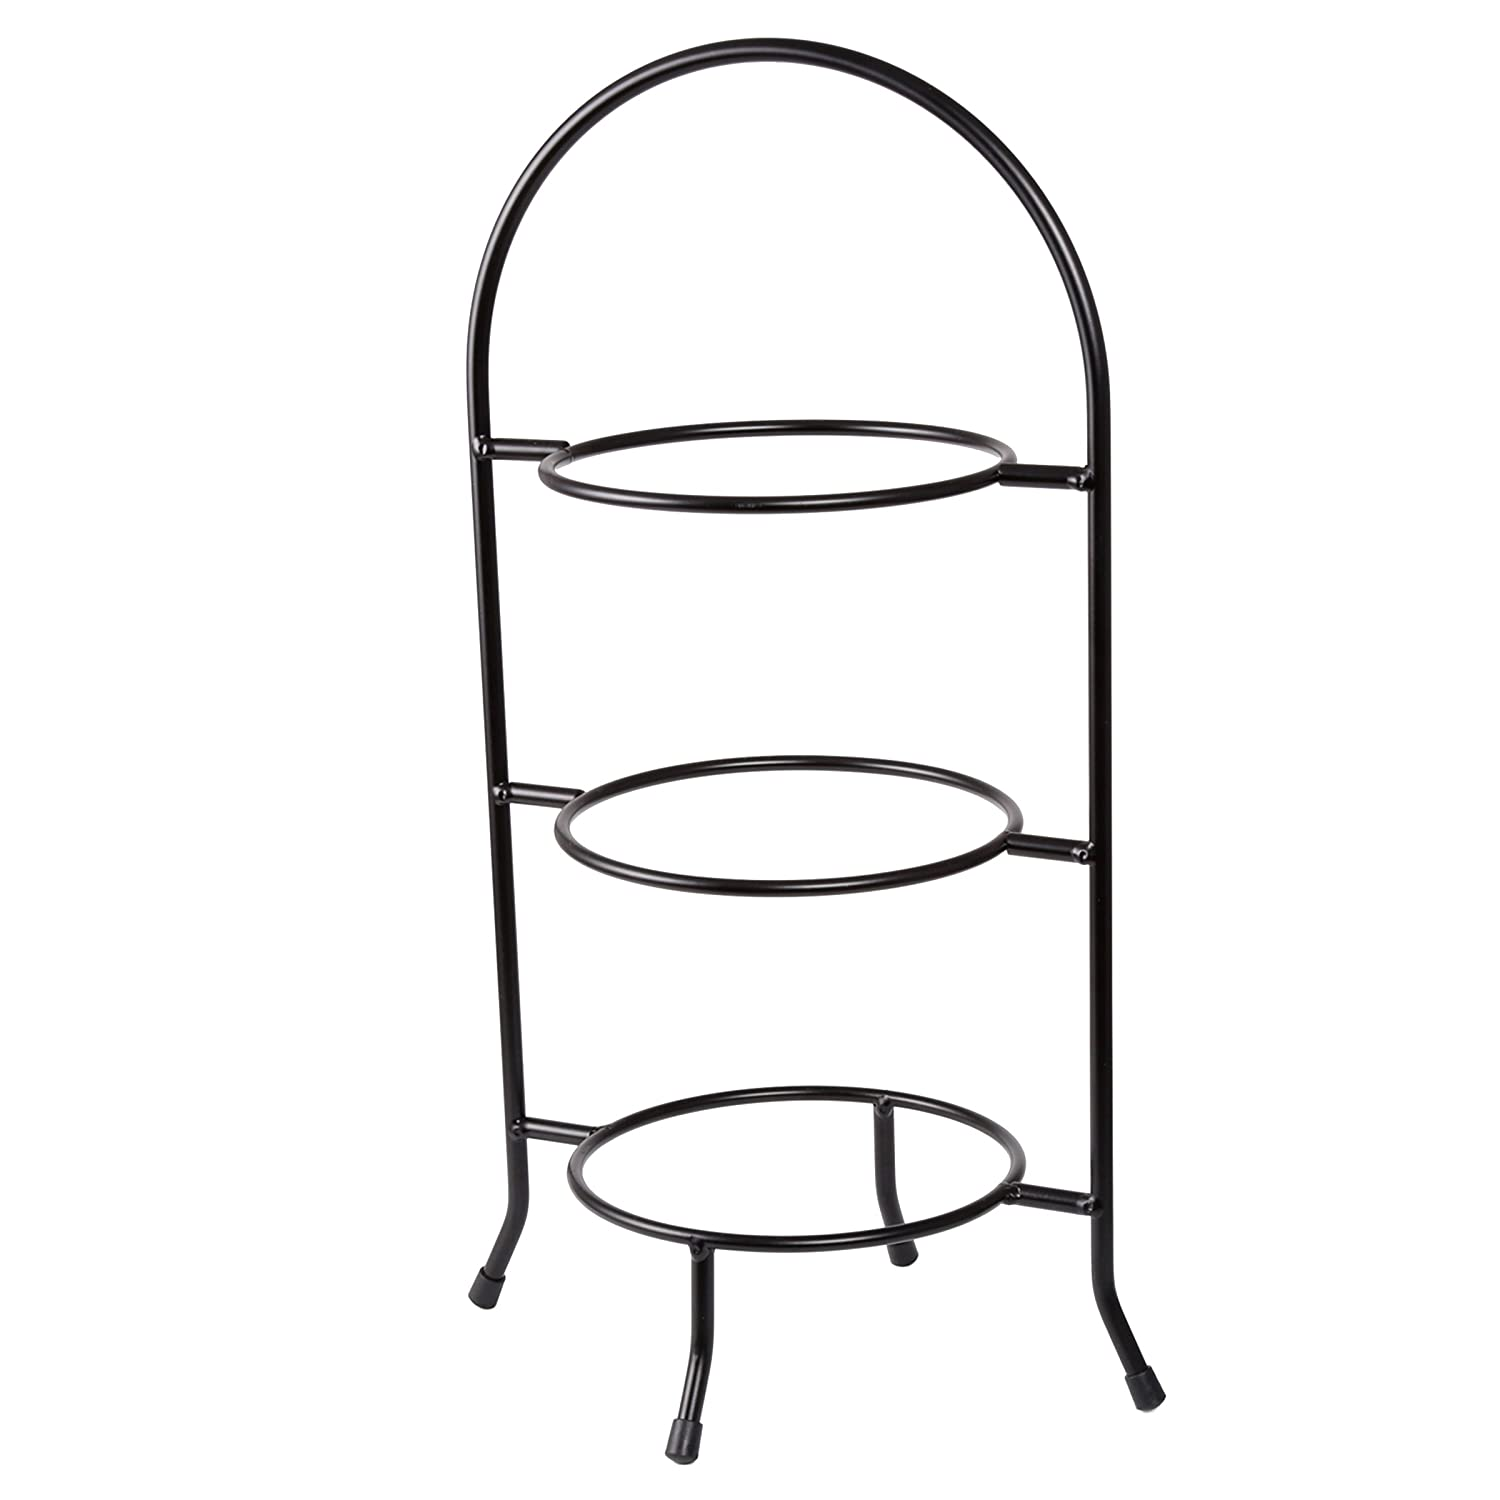 Creative Home 73044 3-Tier Dessert Plate Rack, 18.5-Inch H Evco International